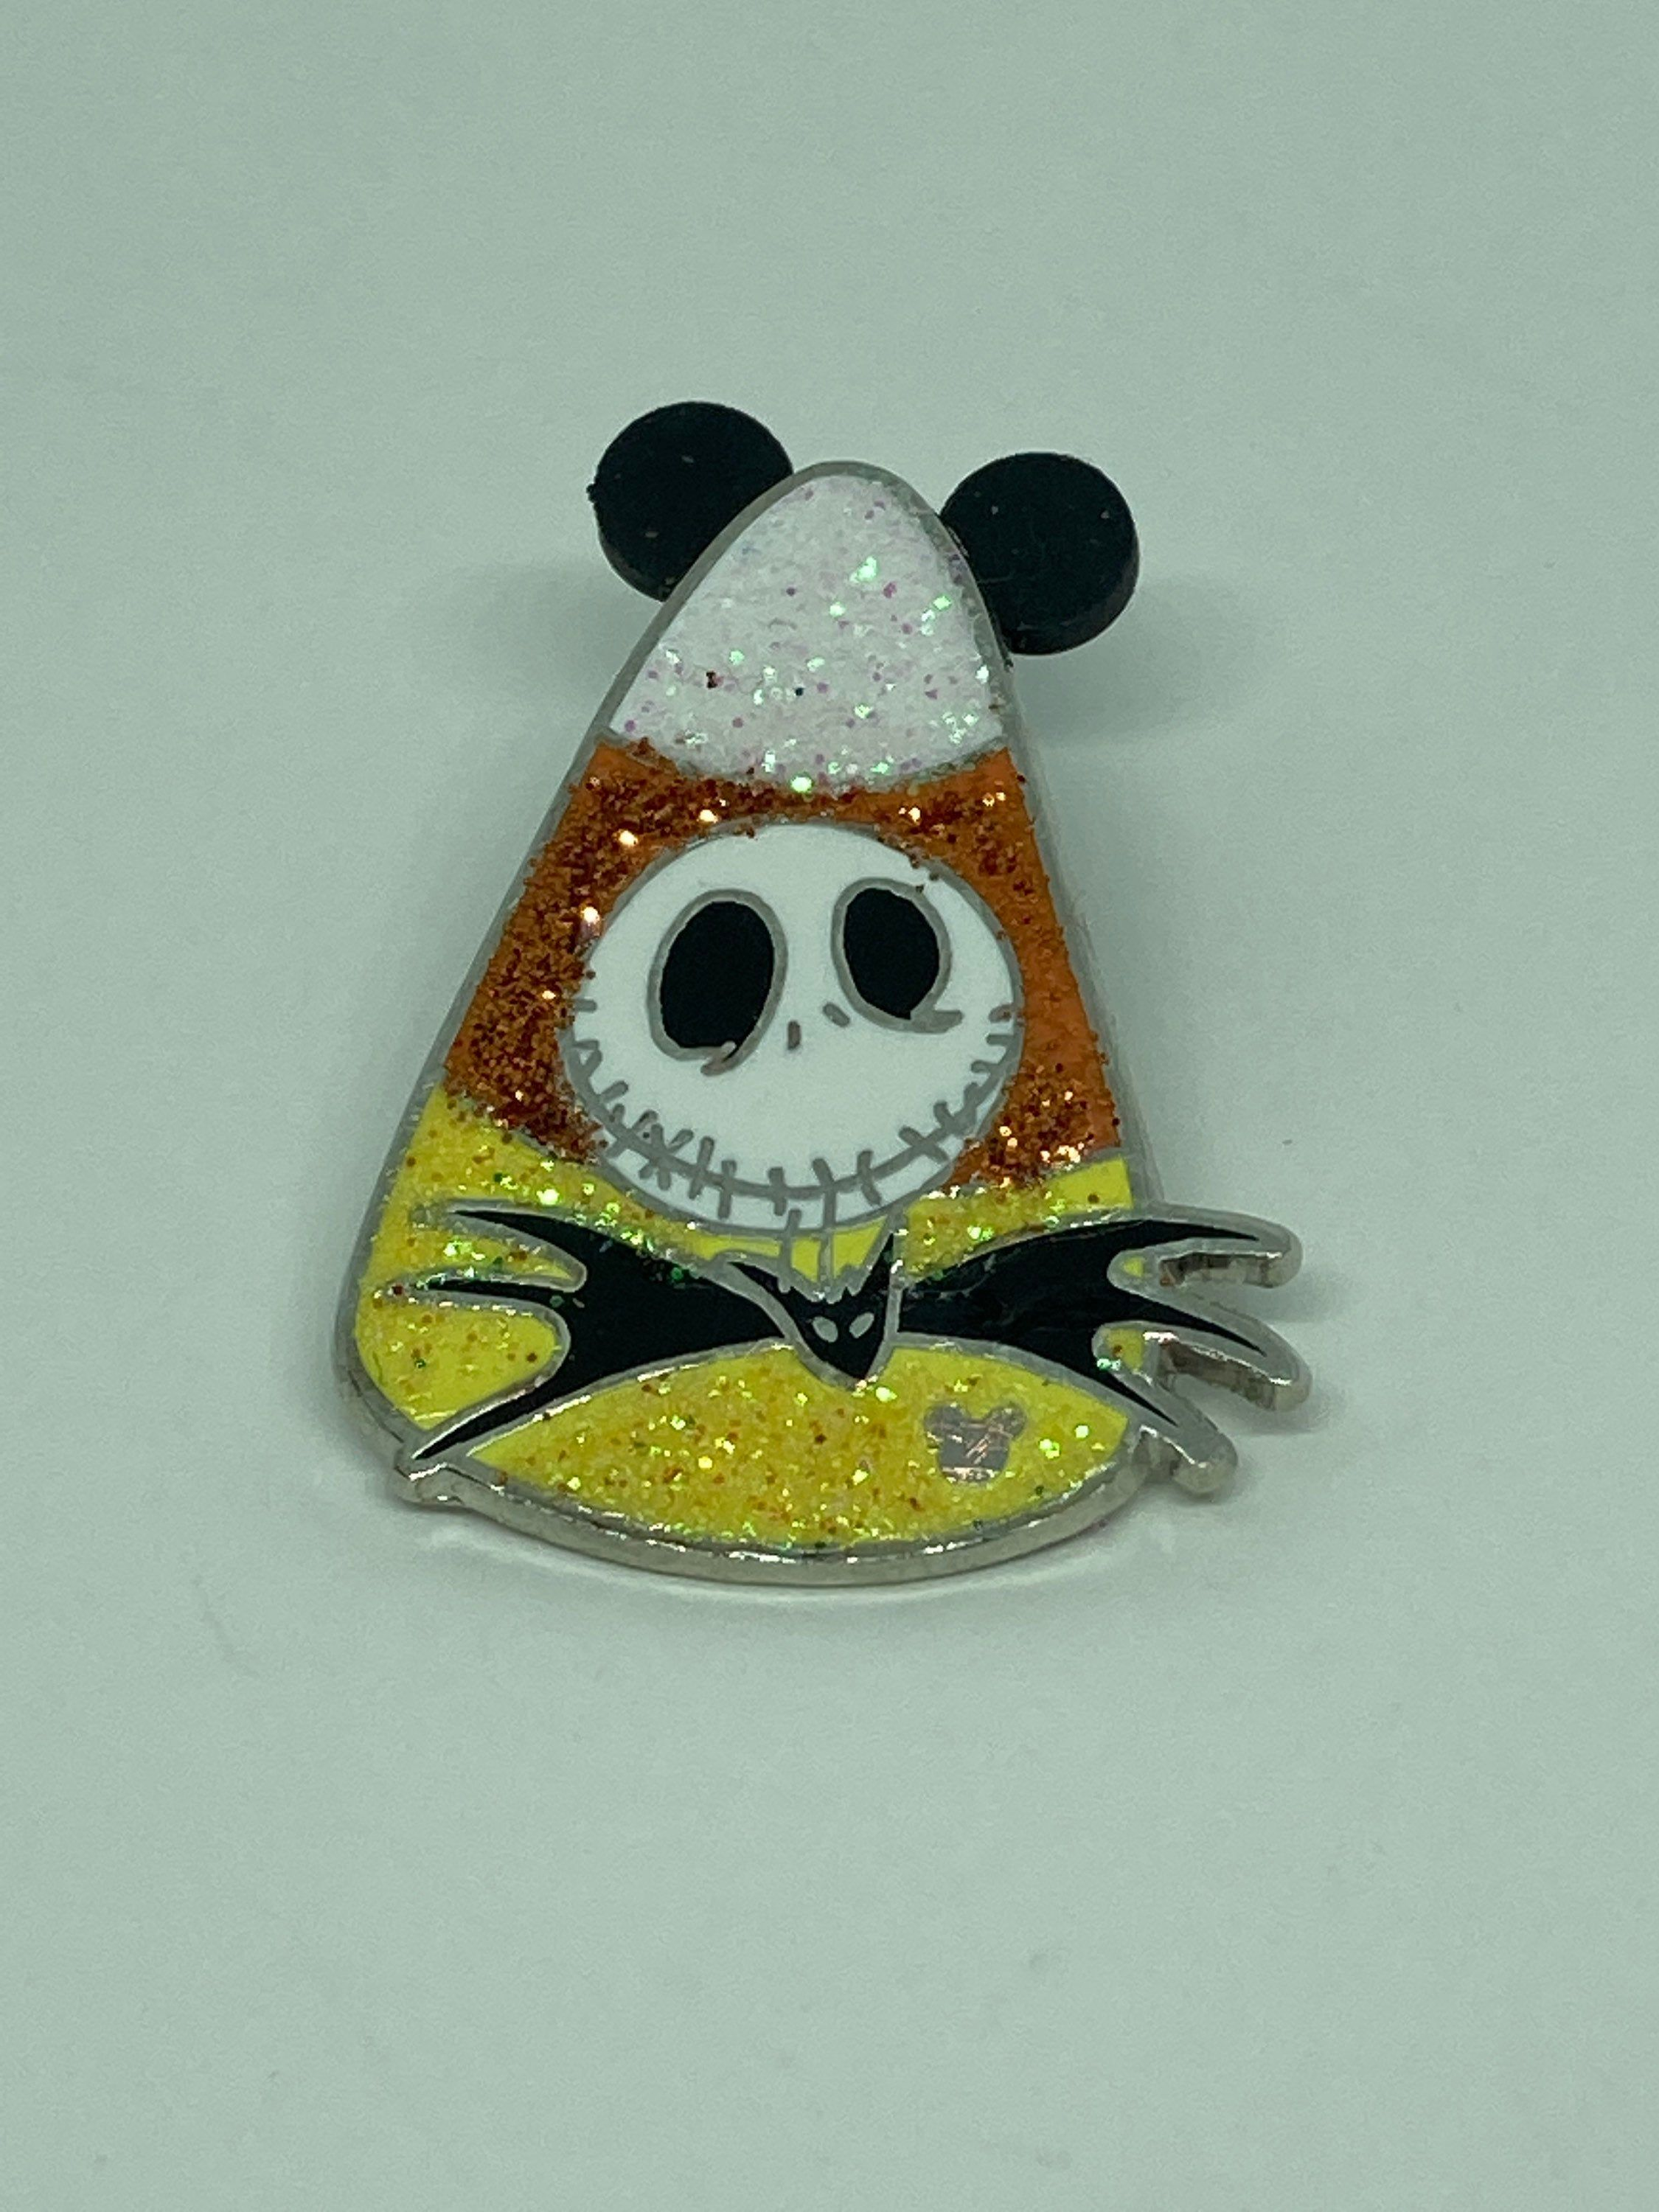 2021 Nightmare Before Christmas Trading Pin Jack Skellington Candy Corn Trading Pin Candy Corn Jewelry Etsy In 2021 Candy Corn Jack Skellington Disney Pin Collections